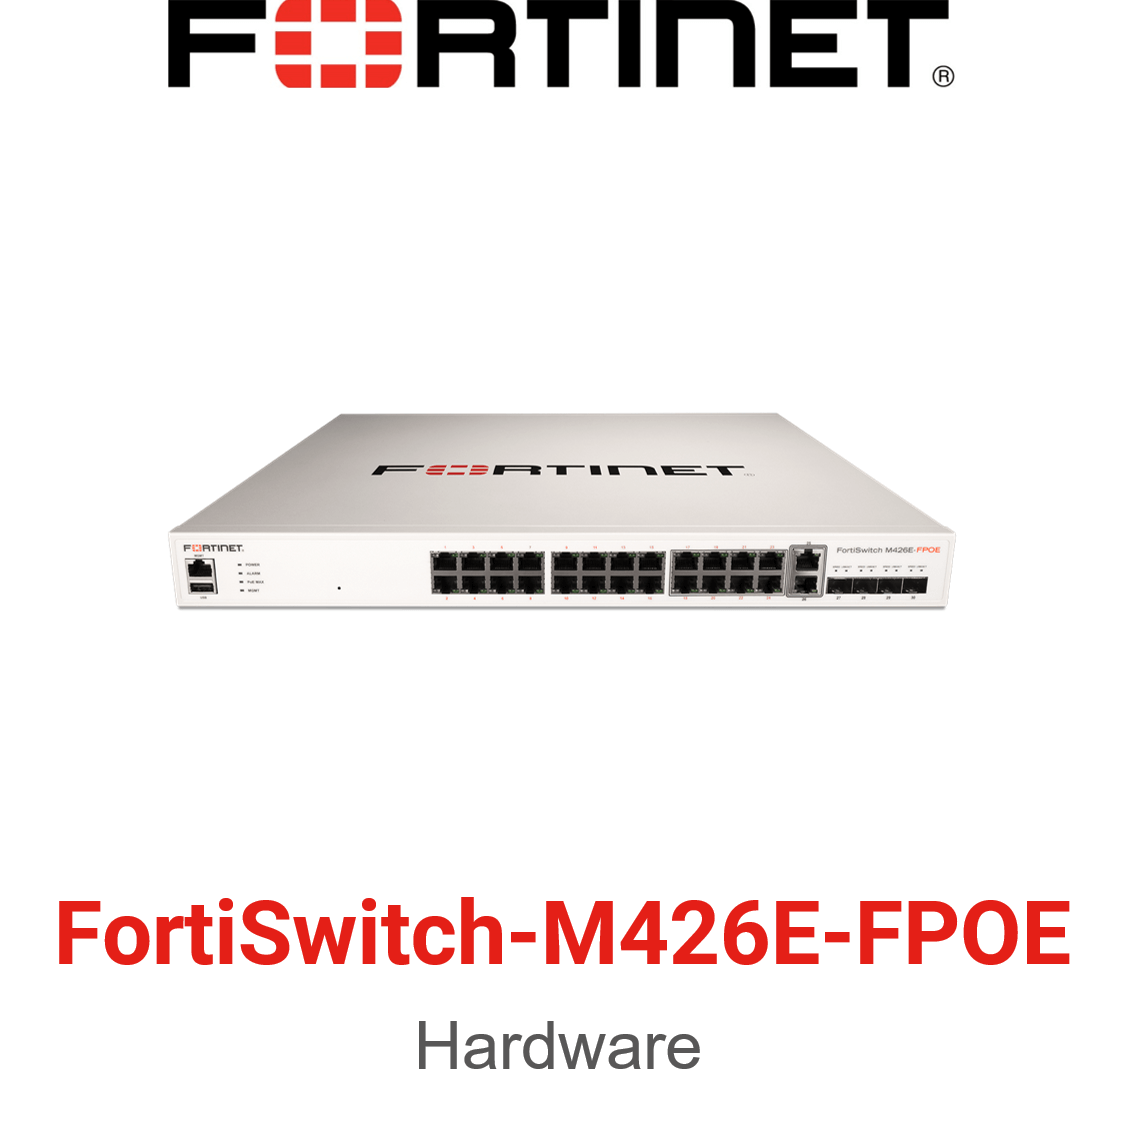 Fortinet FortiSwitch-M426E-FPOE